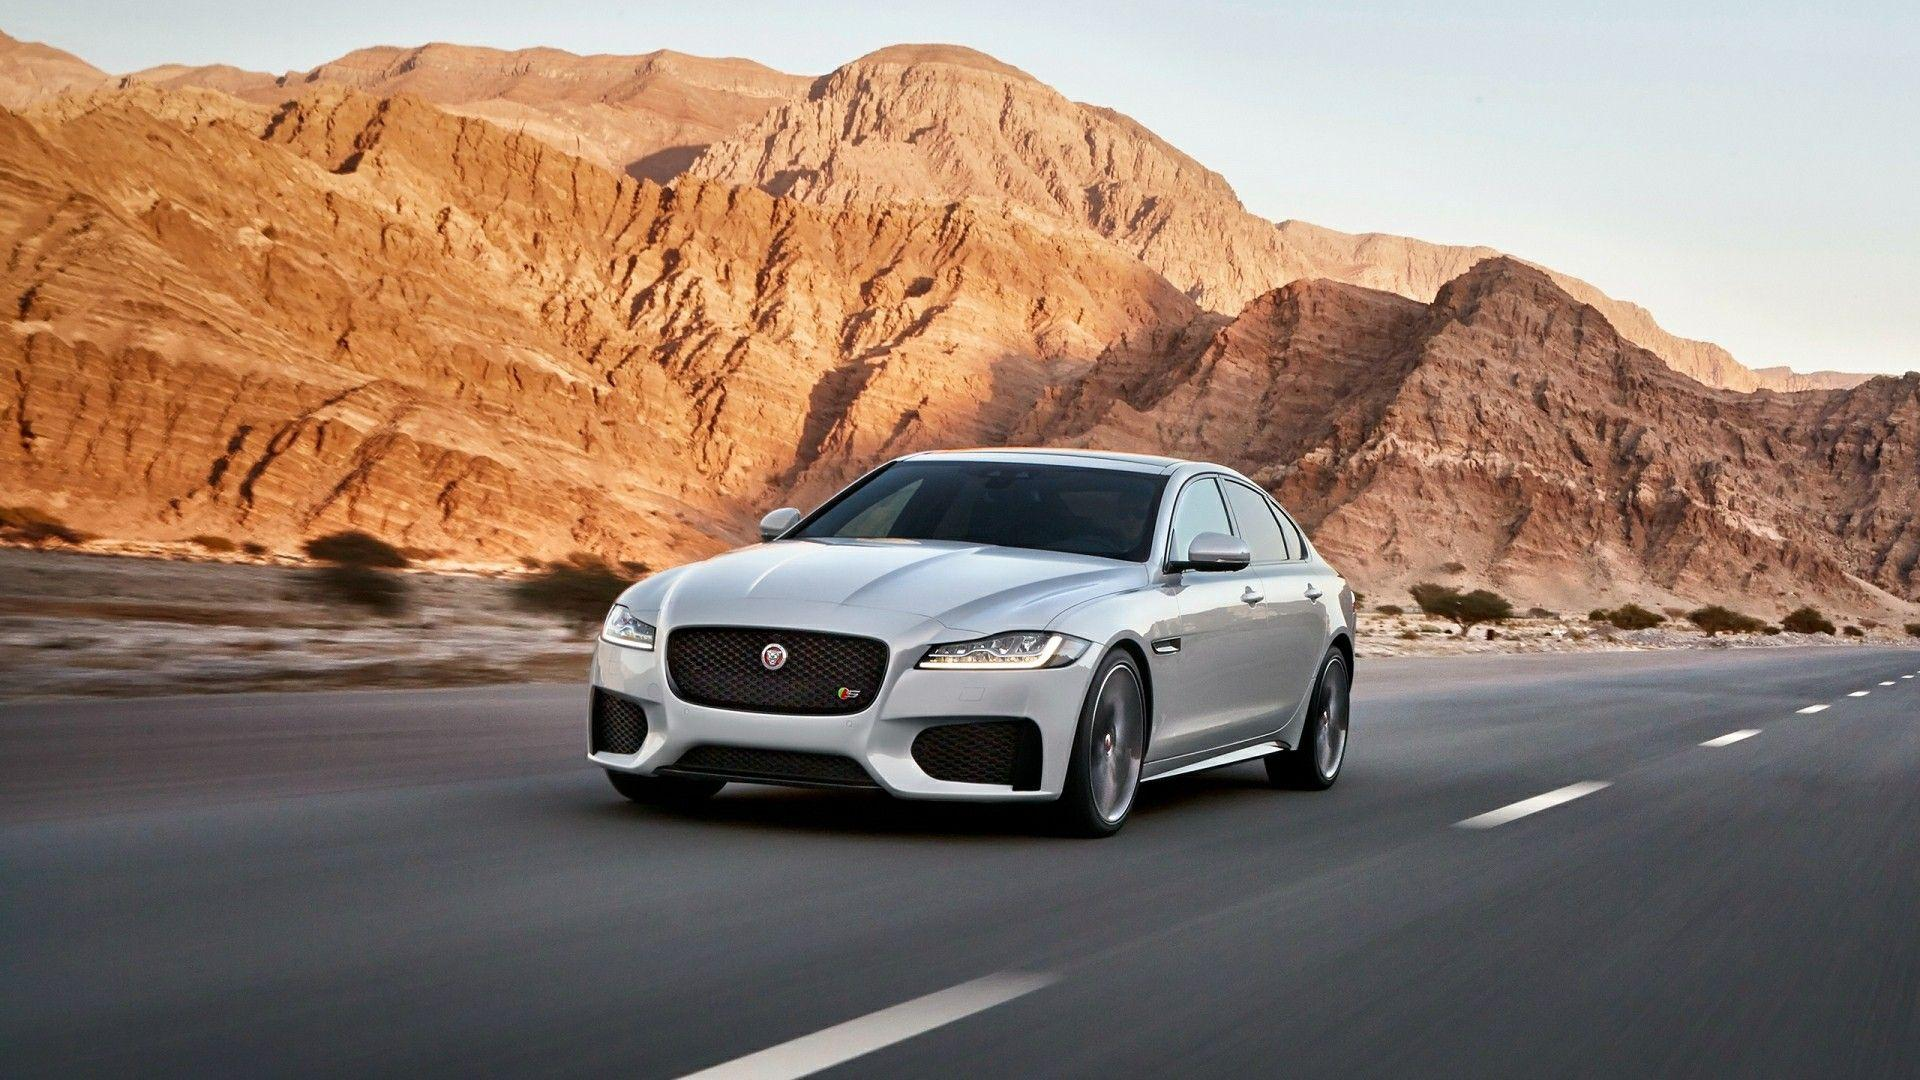 Jaguar Cars Wallpapers Desktop Wallpaper Cave